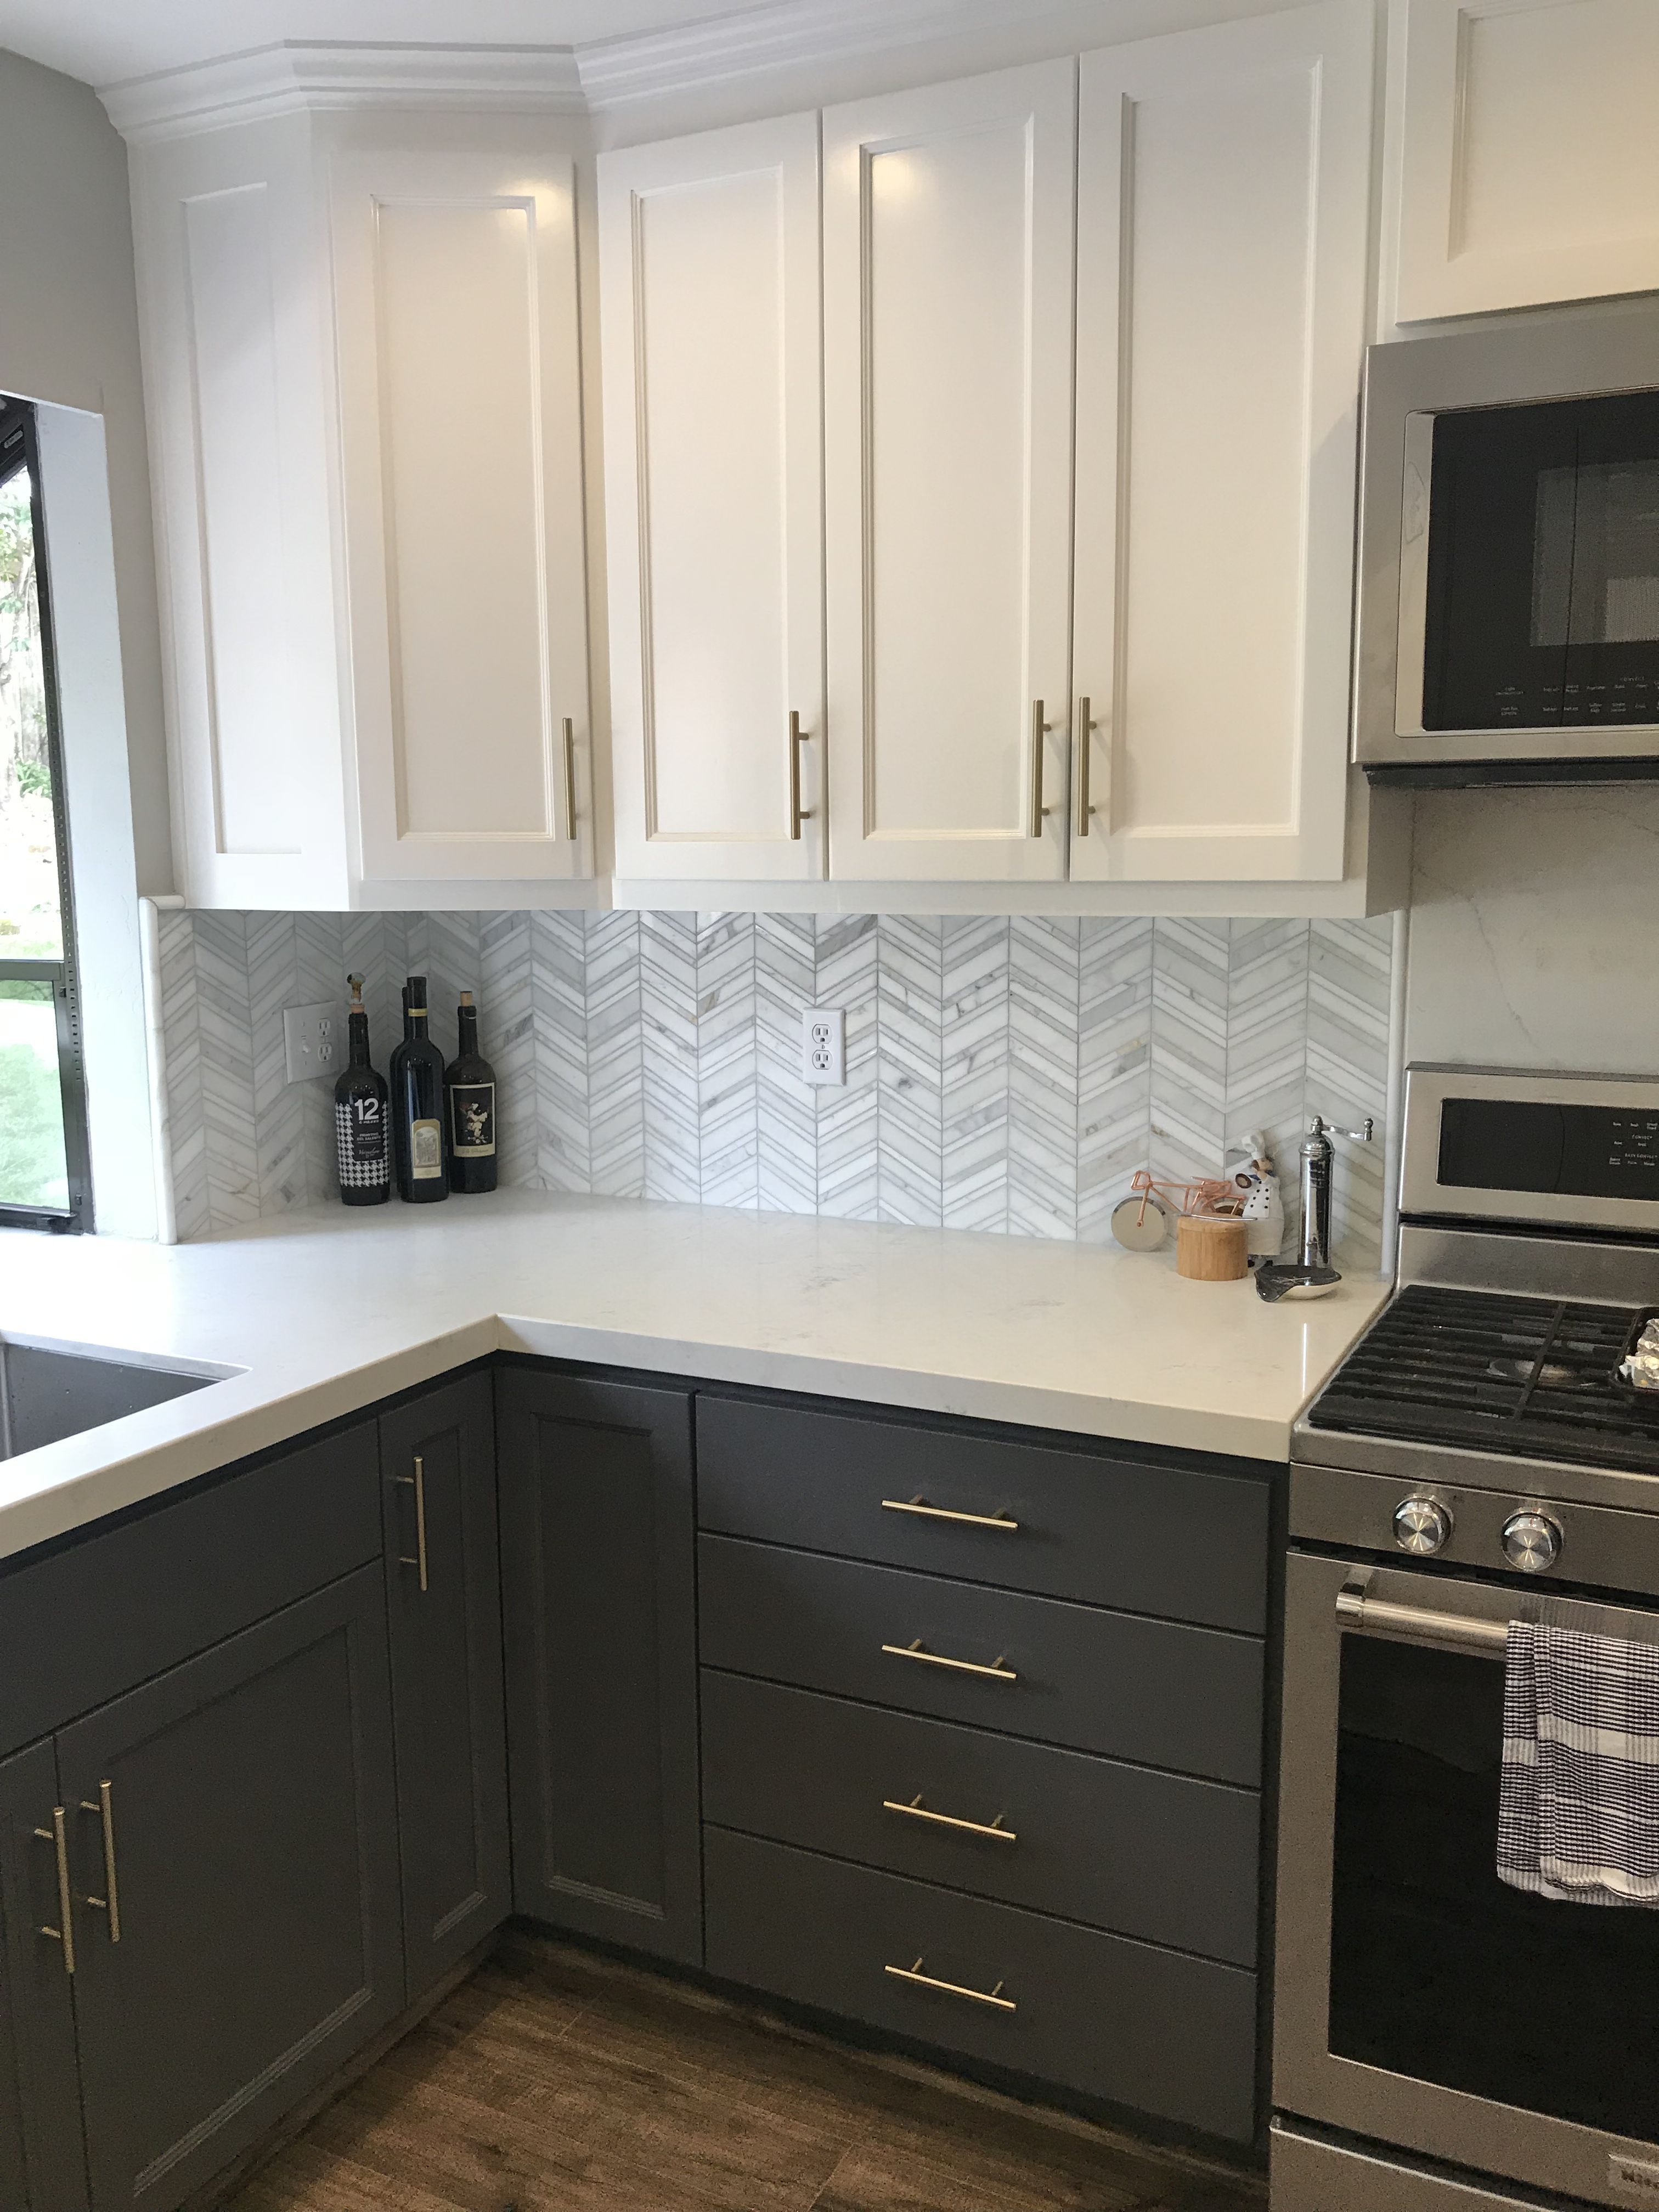 20 Most Popular Kitchen Cabinet Paint Color Ideas Trends For 2019